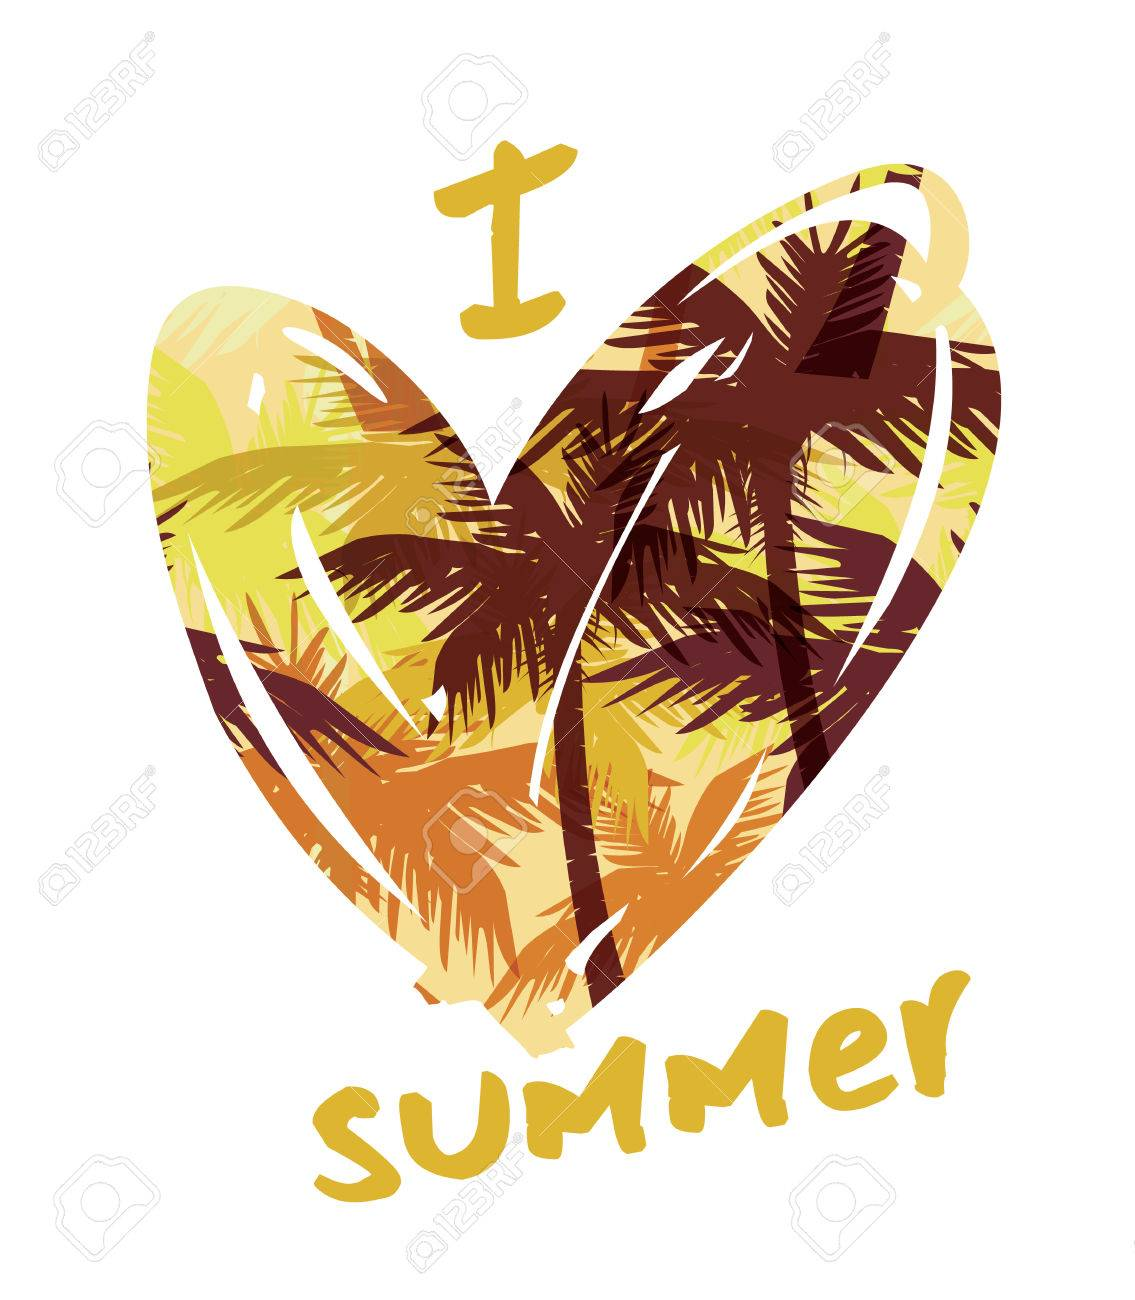 Tropical summer print with slogan for t-shirt graphic and other uses. Vector illustration. - 40912373